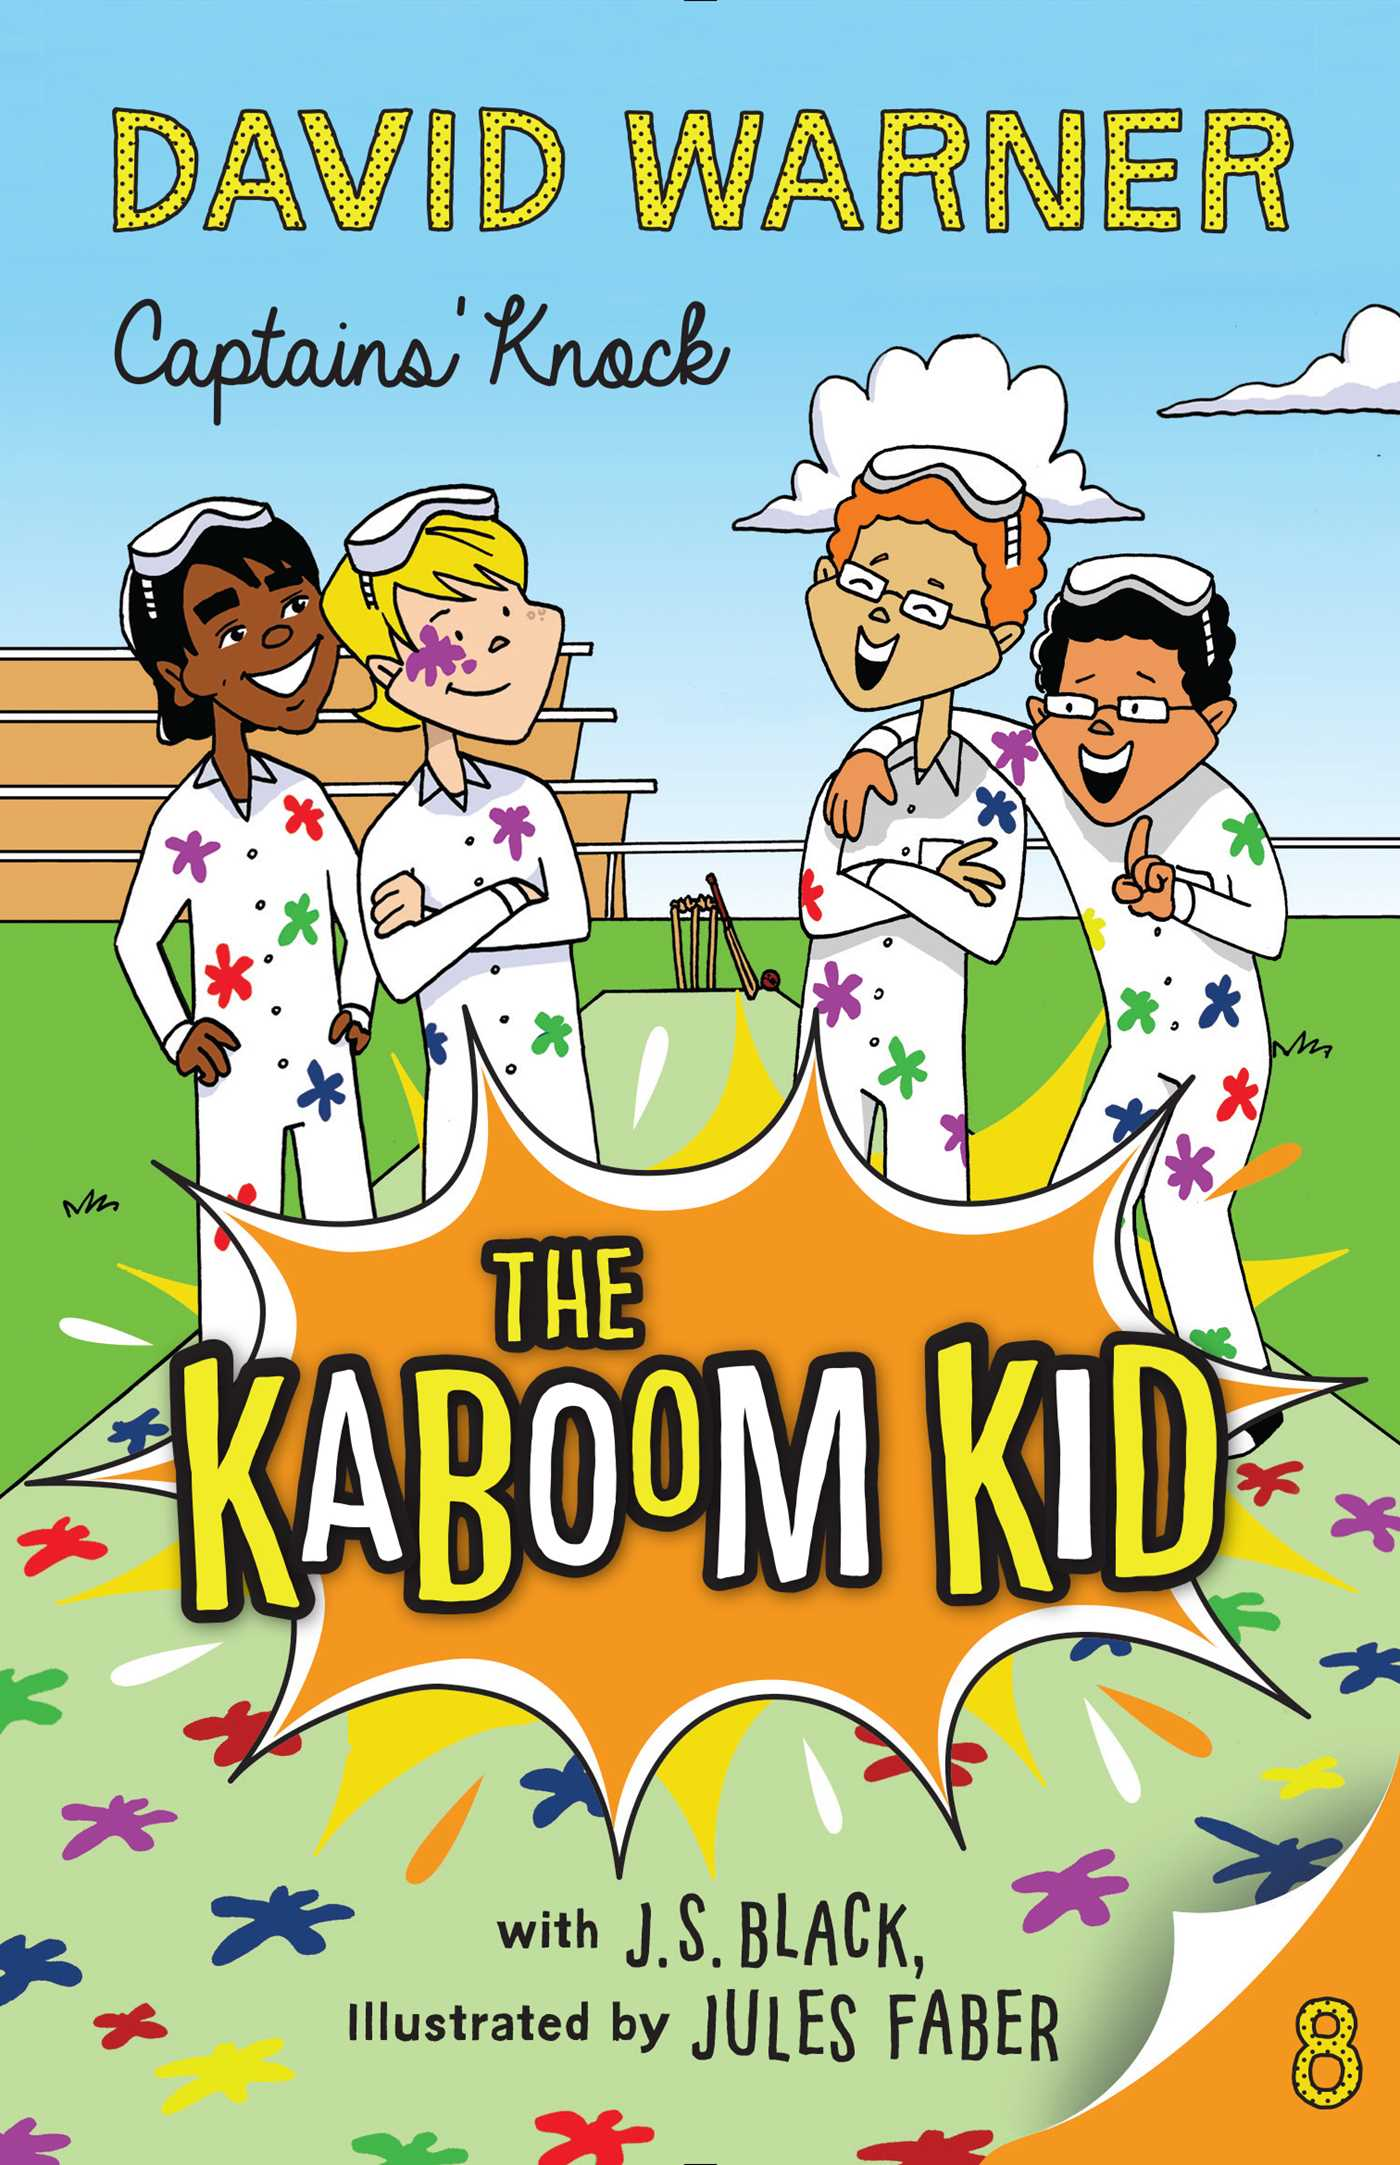 Captains' Knock: Kaboom Kid #8  Davey and his friends are off to Gold's Camp Cricket to help them get an upper hand on the summer of cricket ahead. Sunil and Davey have their eyes on the prize – Sunil as captain, and Davey as vice. But at camp they run into a new nemesis, Kaine – the opposition's captain and Class A dictator. Between paintball, pranks and poltergeists Sunil and Davey have their work cut out for them. And what – or who – is appearing in Davey's dreams to give him advice? Can Sunil and Davey prove they are worthy of the leadership of their team? And who has Davey got lined up to help them win?